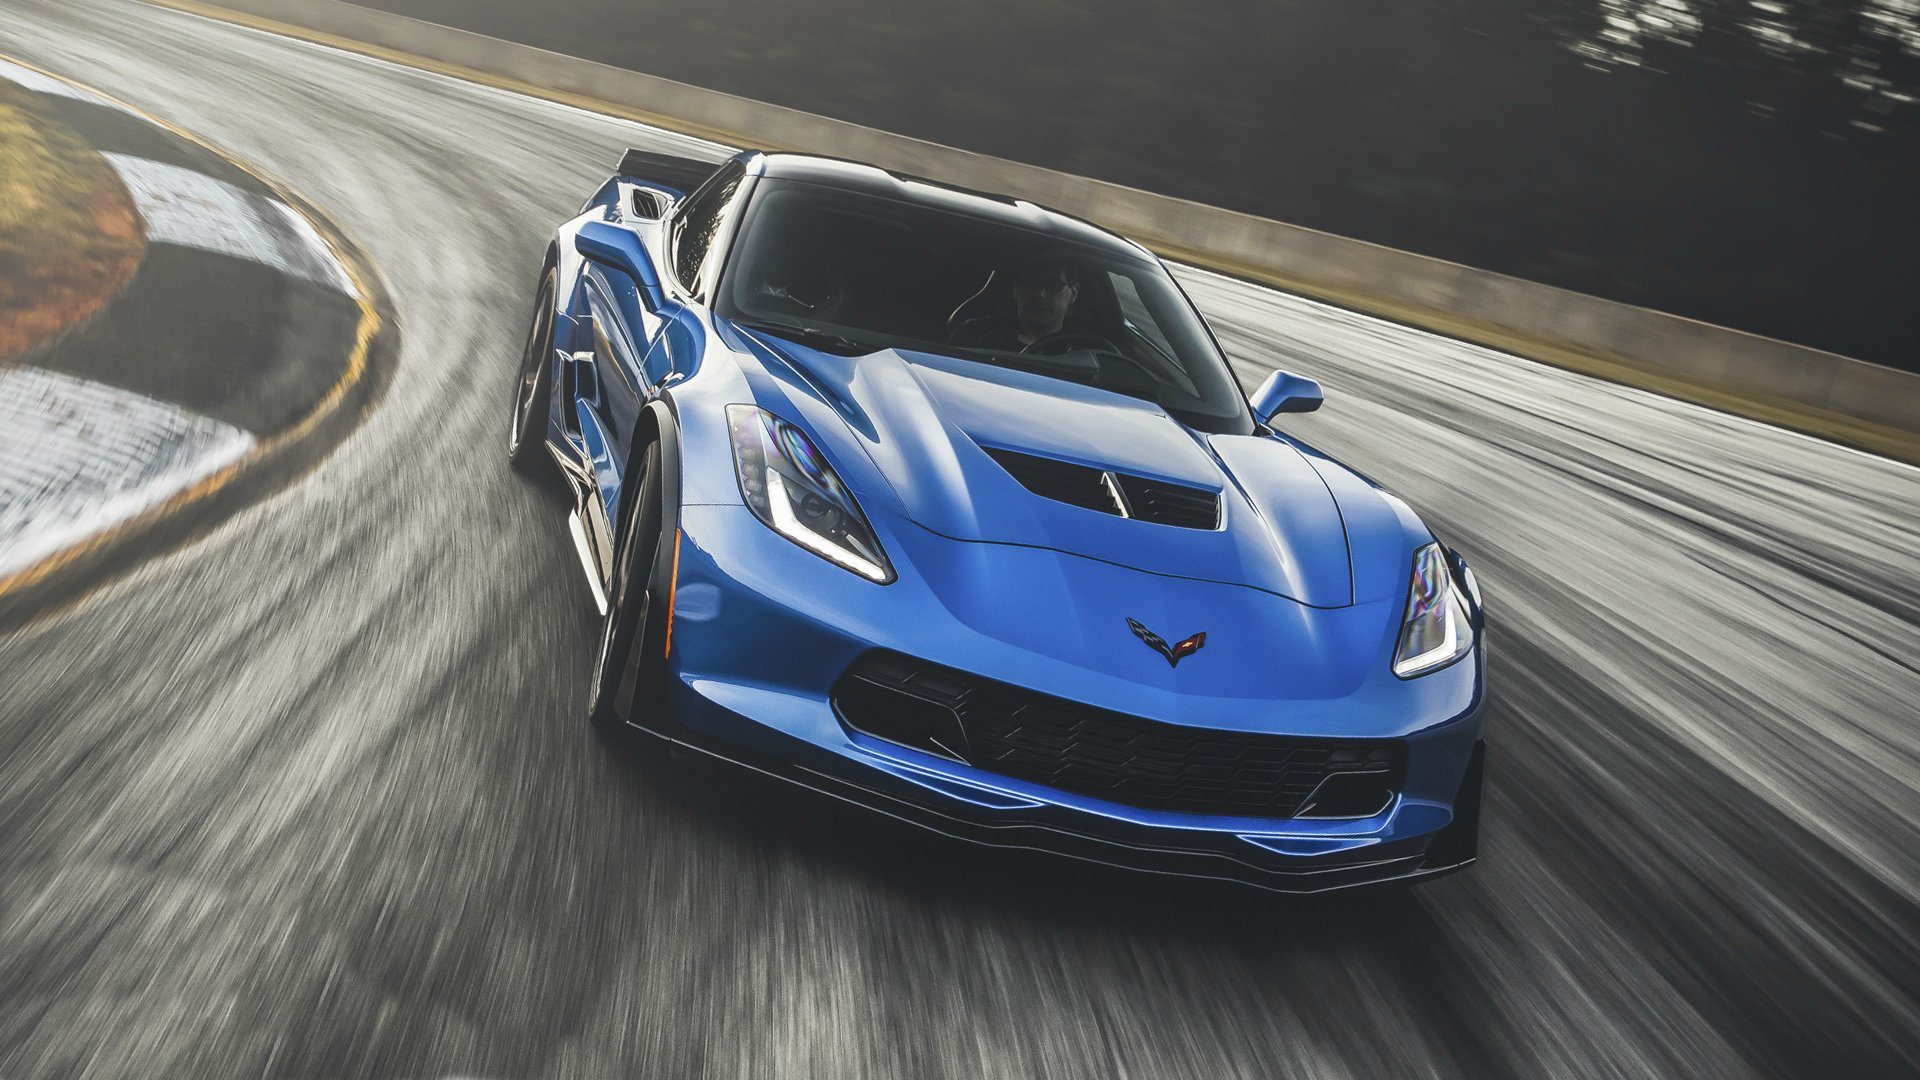 New 2019 Chevrolet Corvette Test Drive On Road